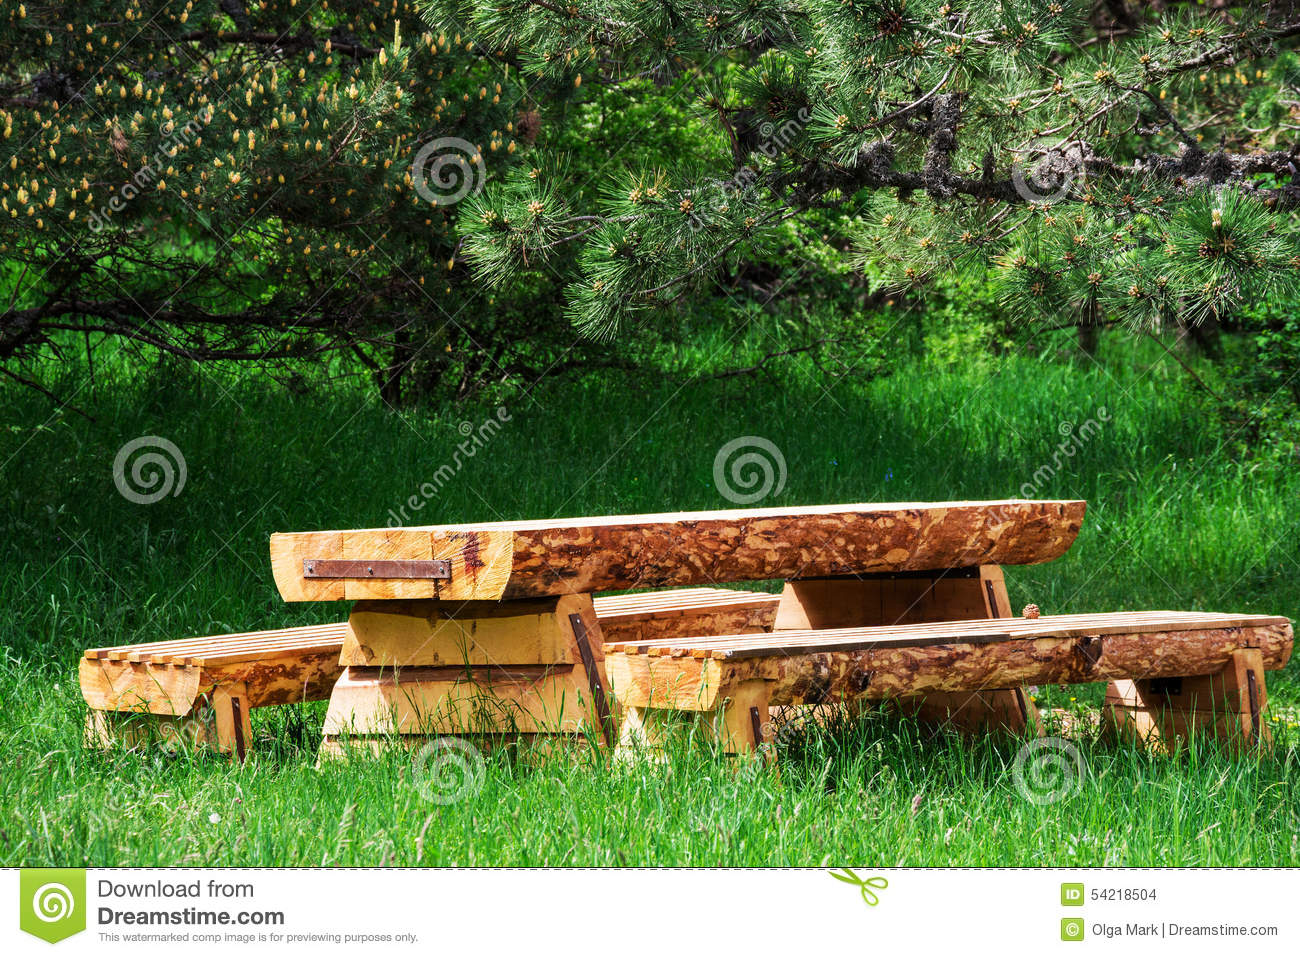 Awe Inspiring Wooden Table With Benches In A Pine Forest Stock Photo Gmtry Best Dining Table And Chair Ideas Images Gmtryco